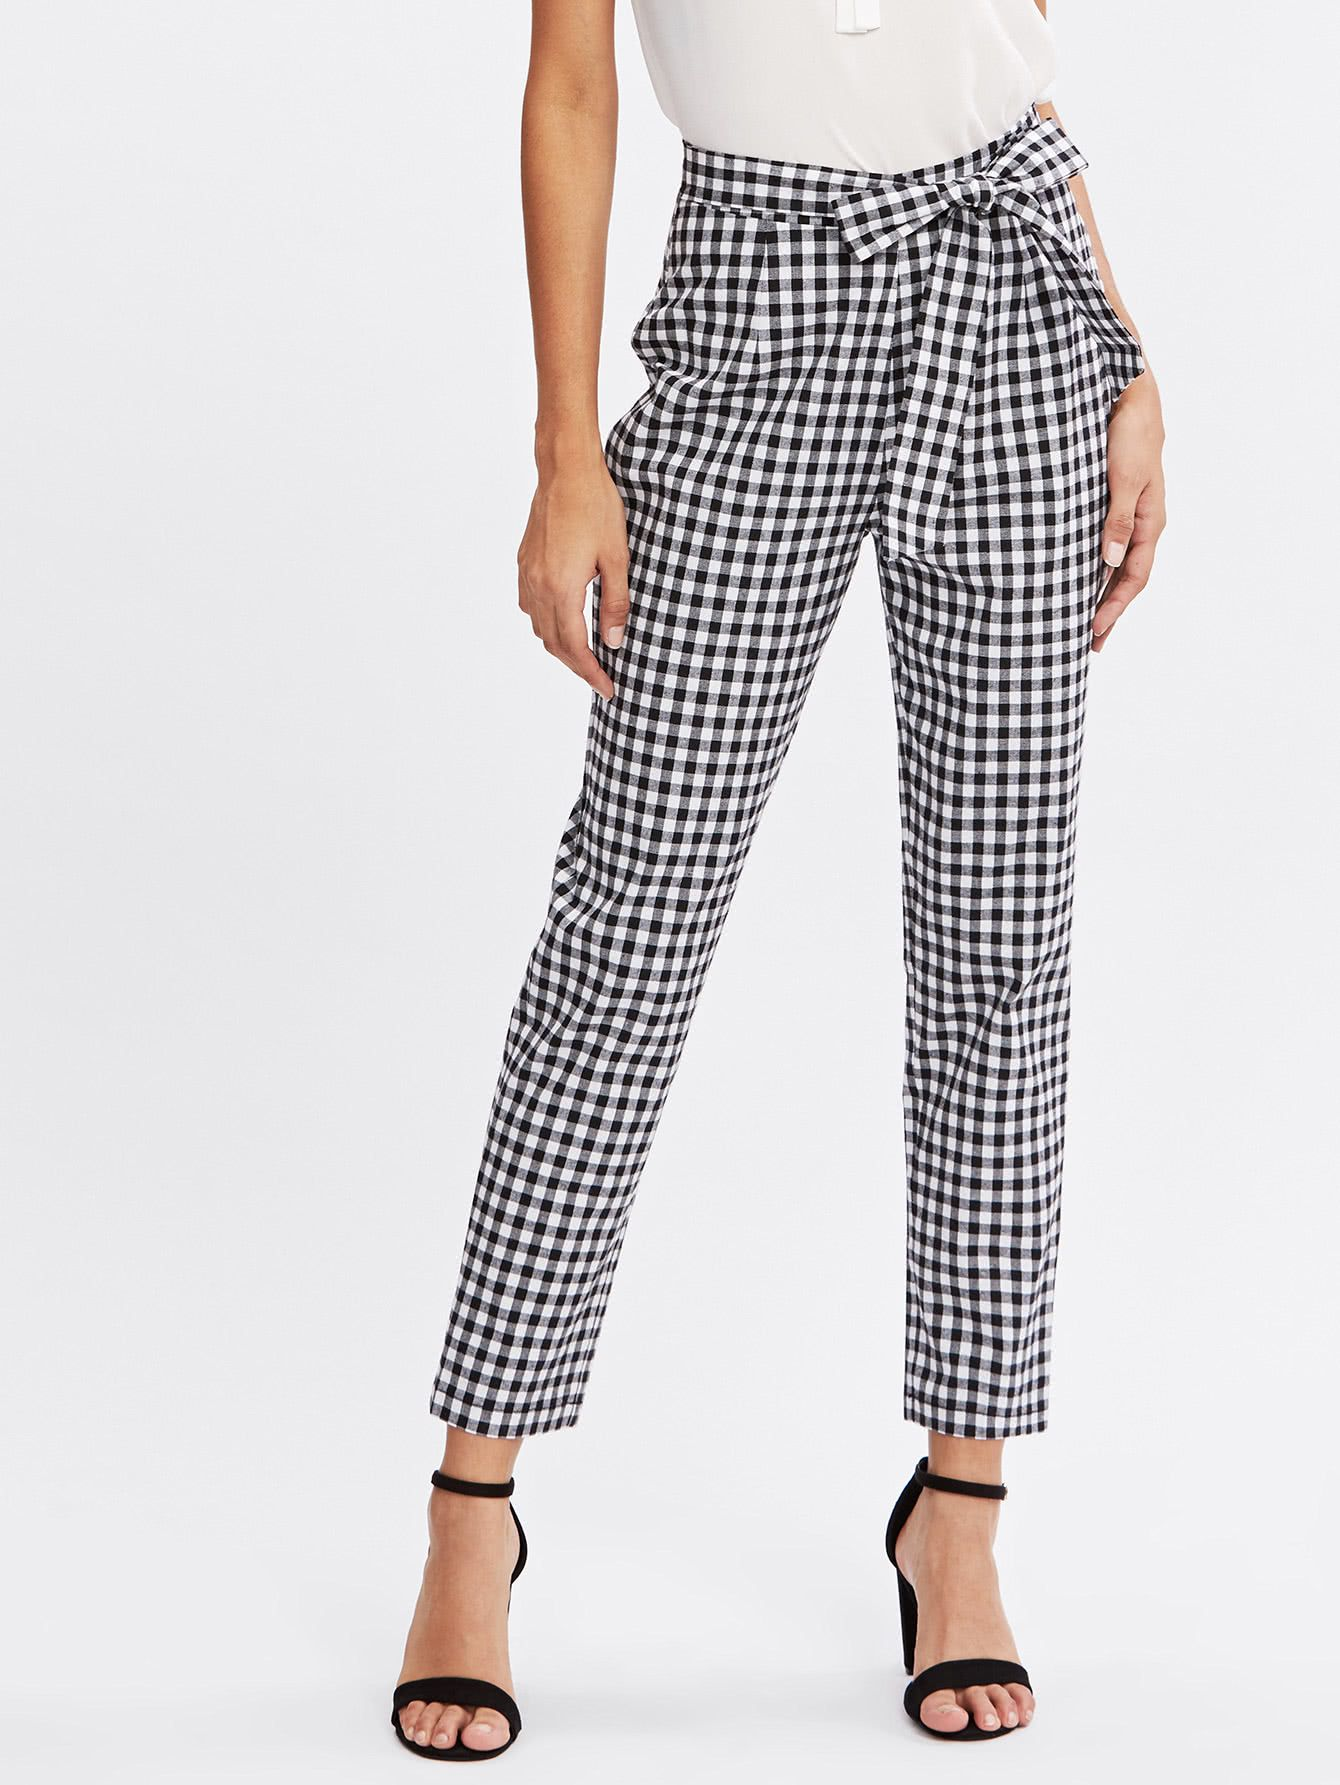 0e0e4d0bf5 Checkered Bow Tie Waist Smoking Pants | D R E S S | Gingham pants ...